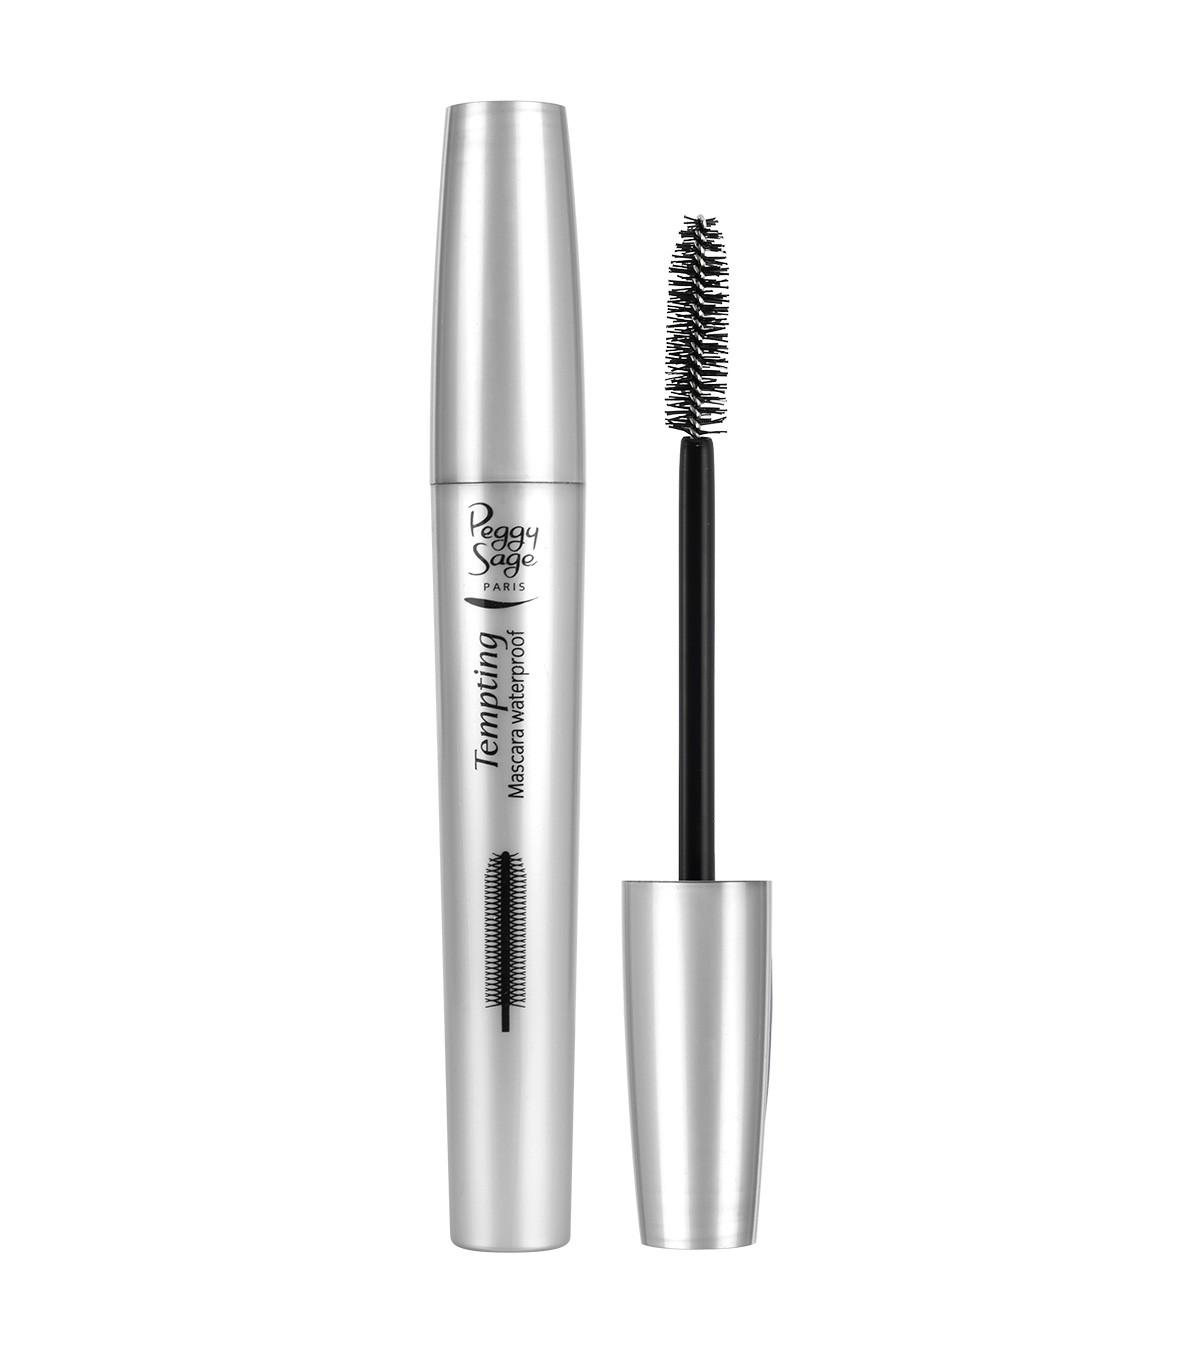 Mascara waterproof Tempting